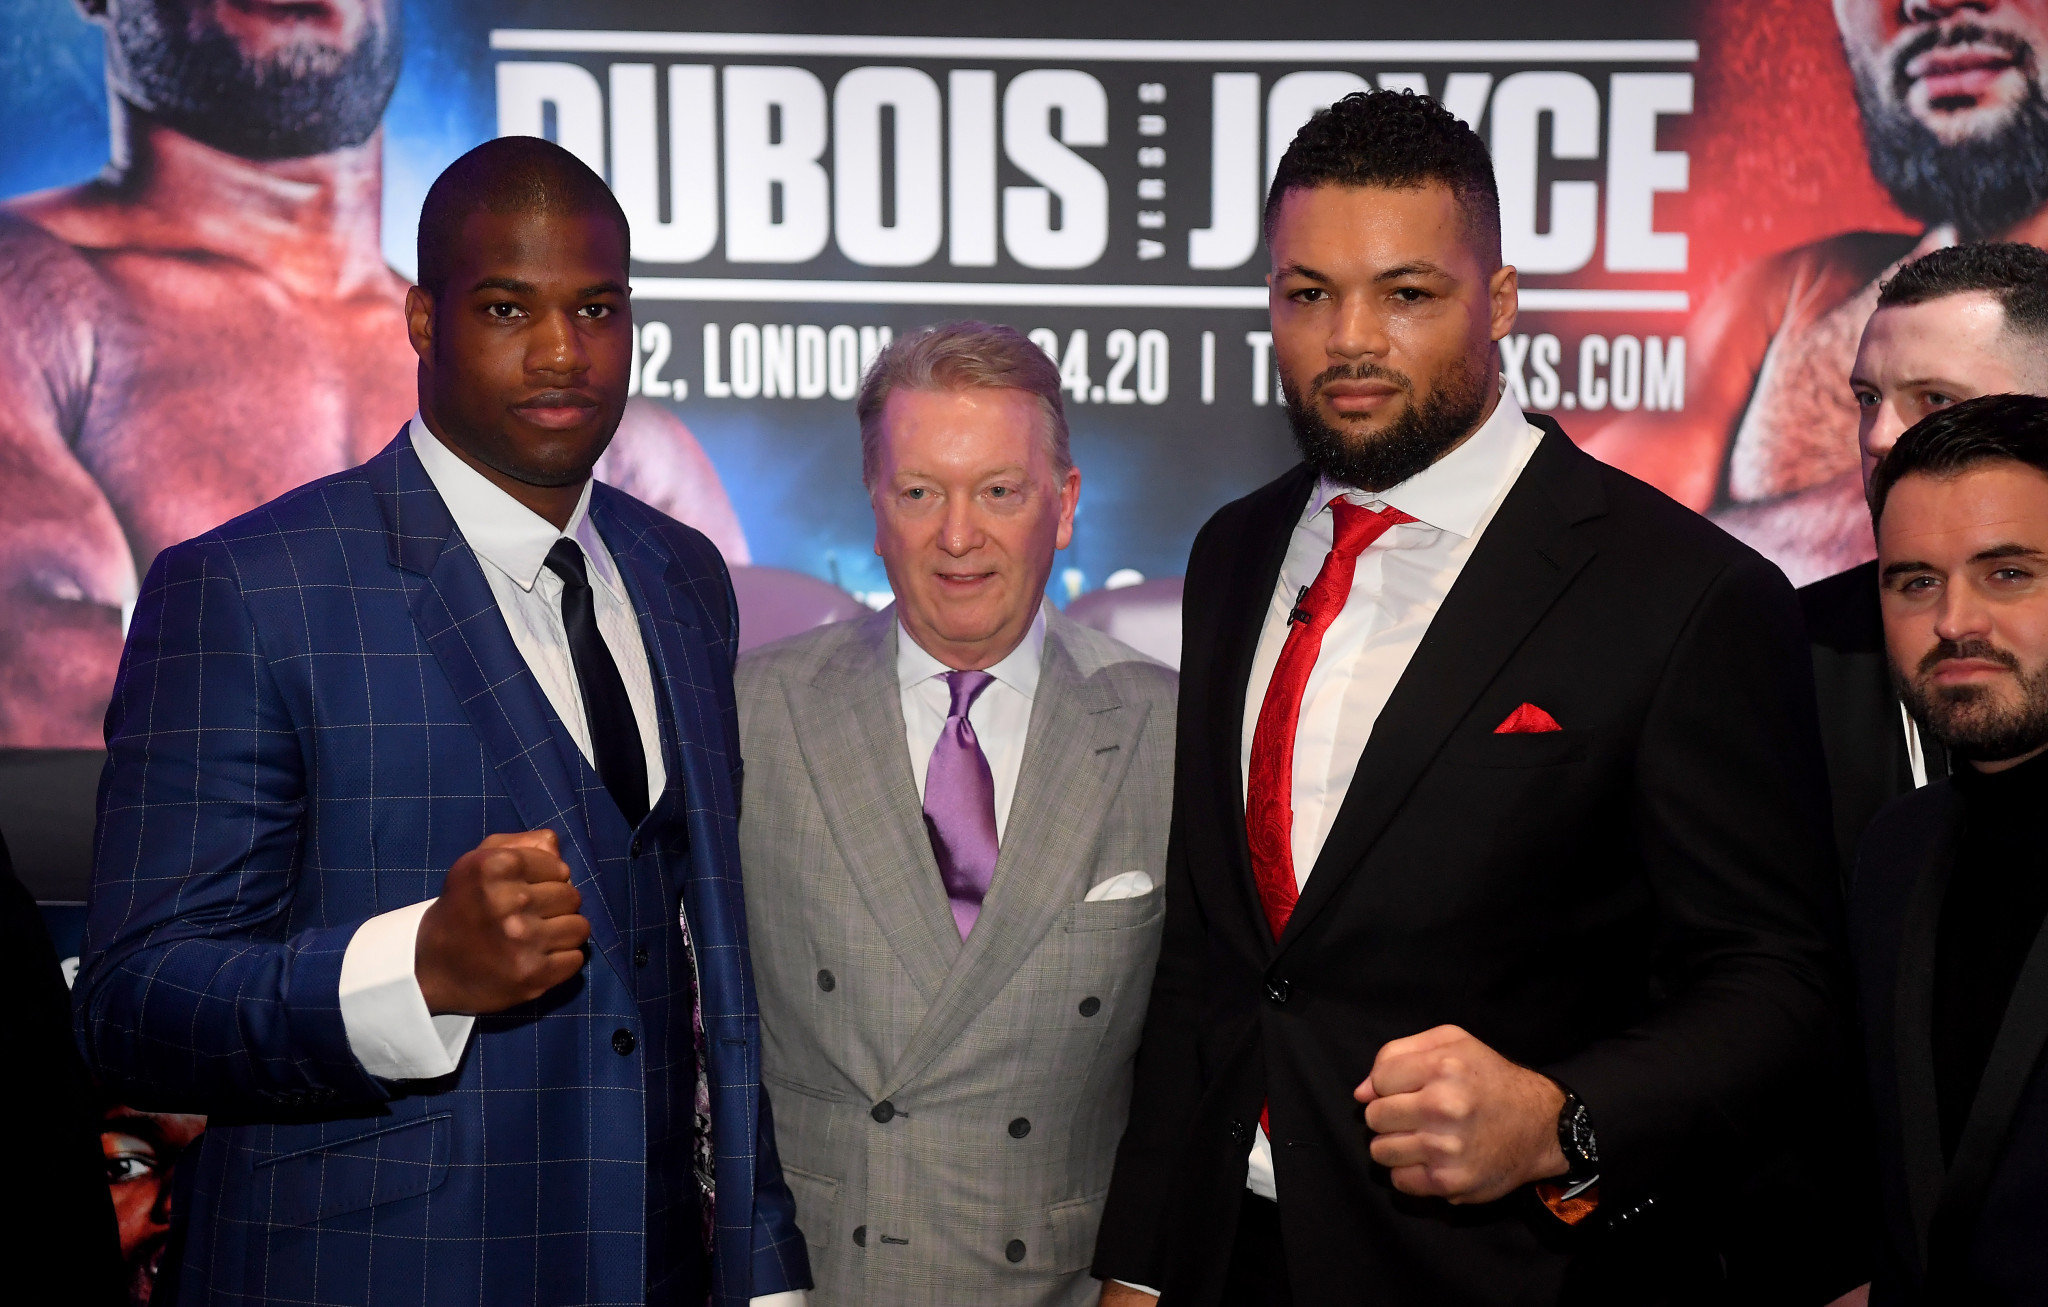 Daniel Dubois, left, and Joe Joyce have had to wait many months to finally fight because of coronavirus-related postponements ©Getty Images